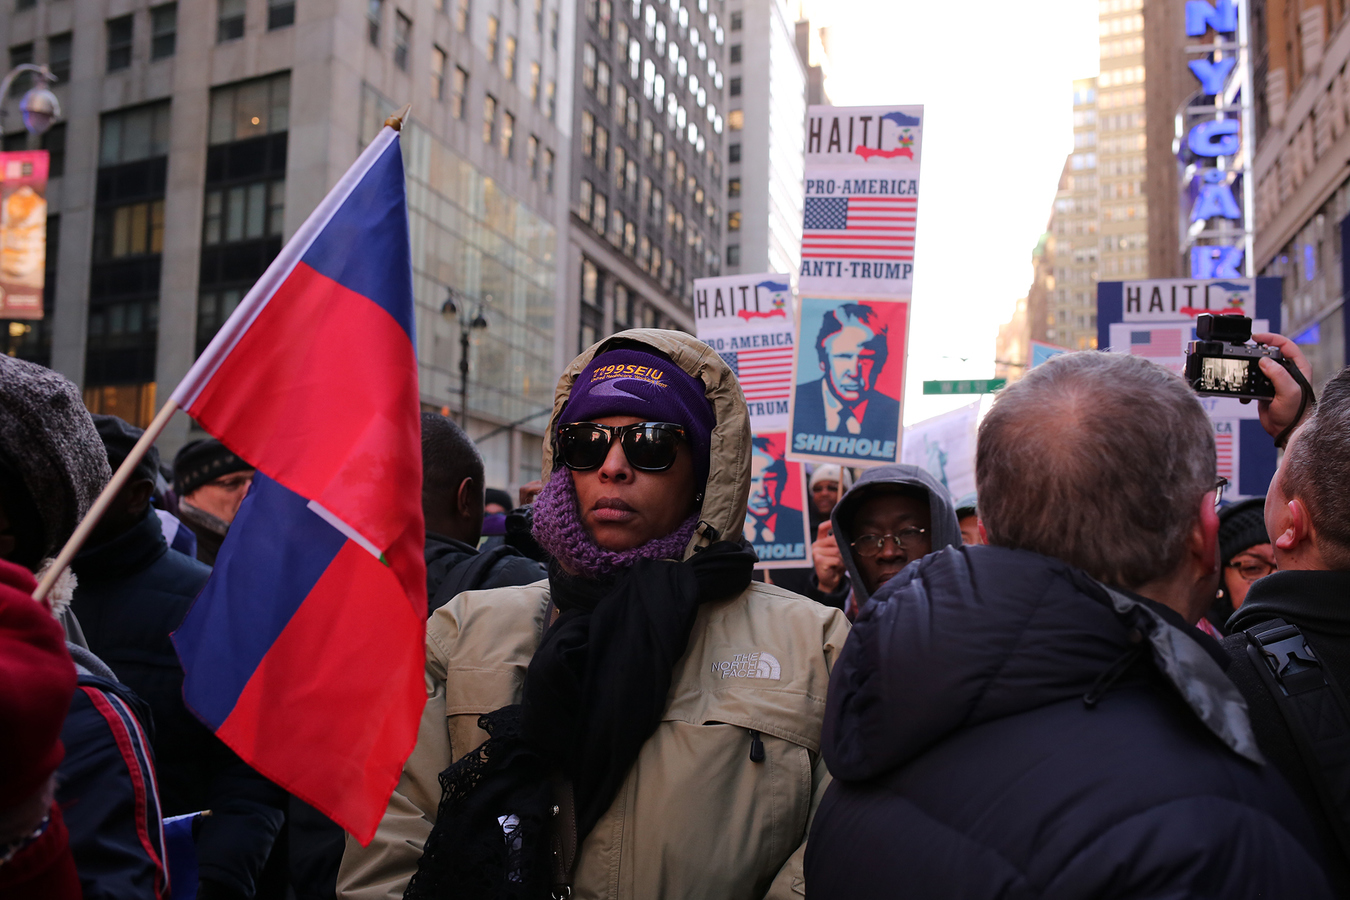 USA 2017- Martin Luther King Day 1199 SEIU United Healthcare Workers East Rally Against Racism: Stand Up for Haiti and Africa Times Square 1/15/18